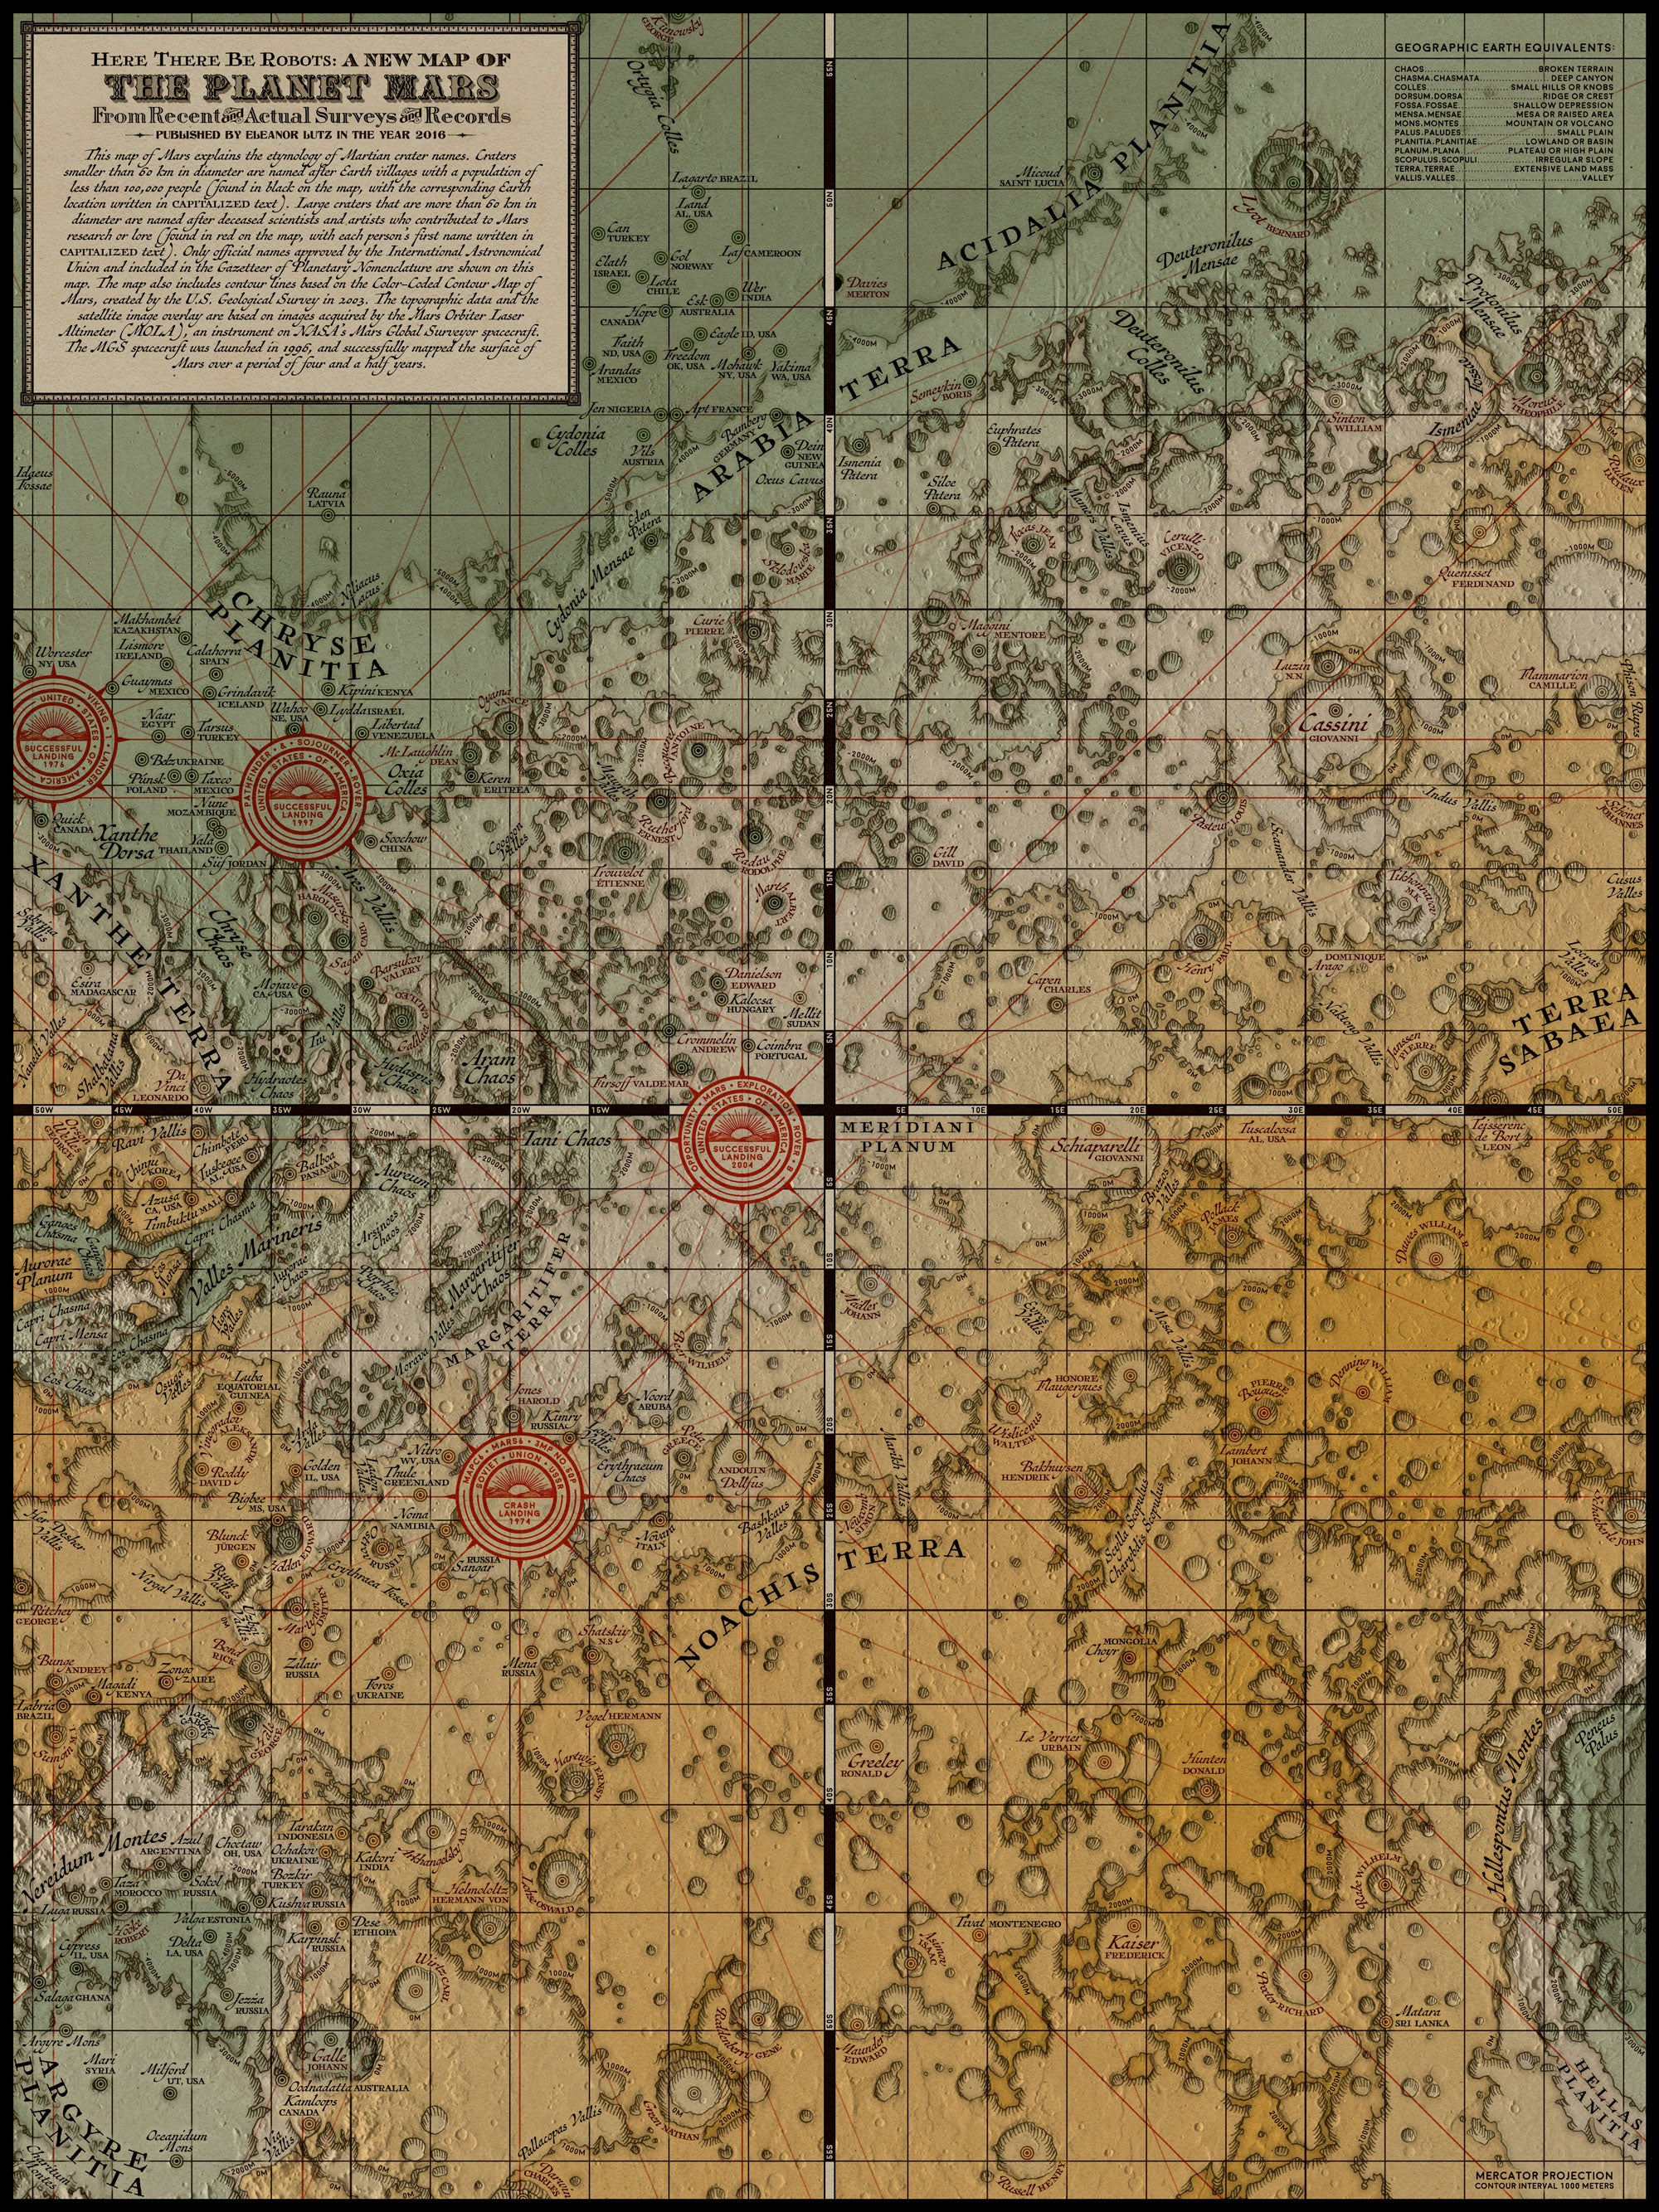 What Mars Would Look Like Mapped by Medieval Cartographers